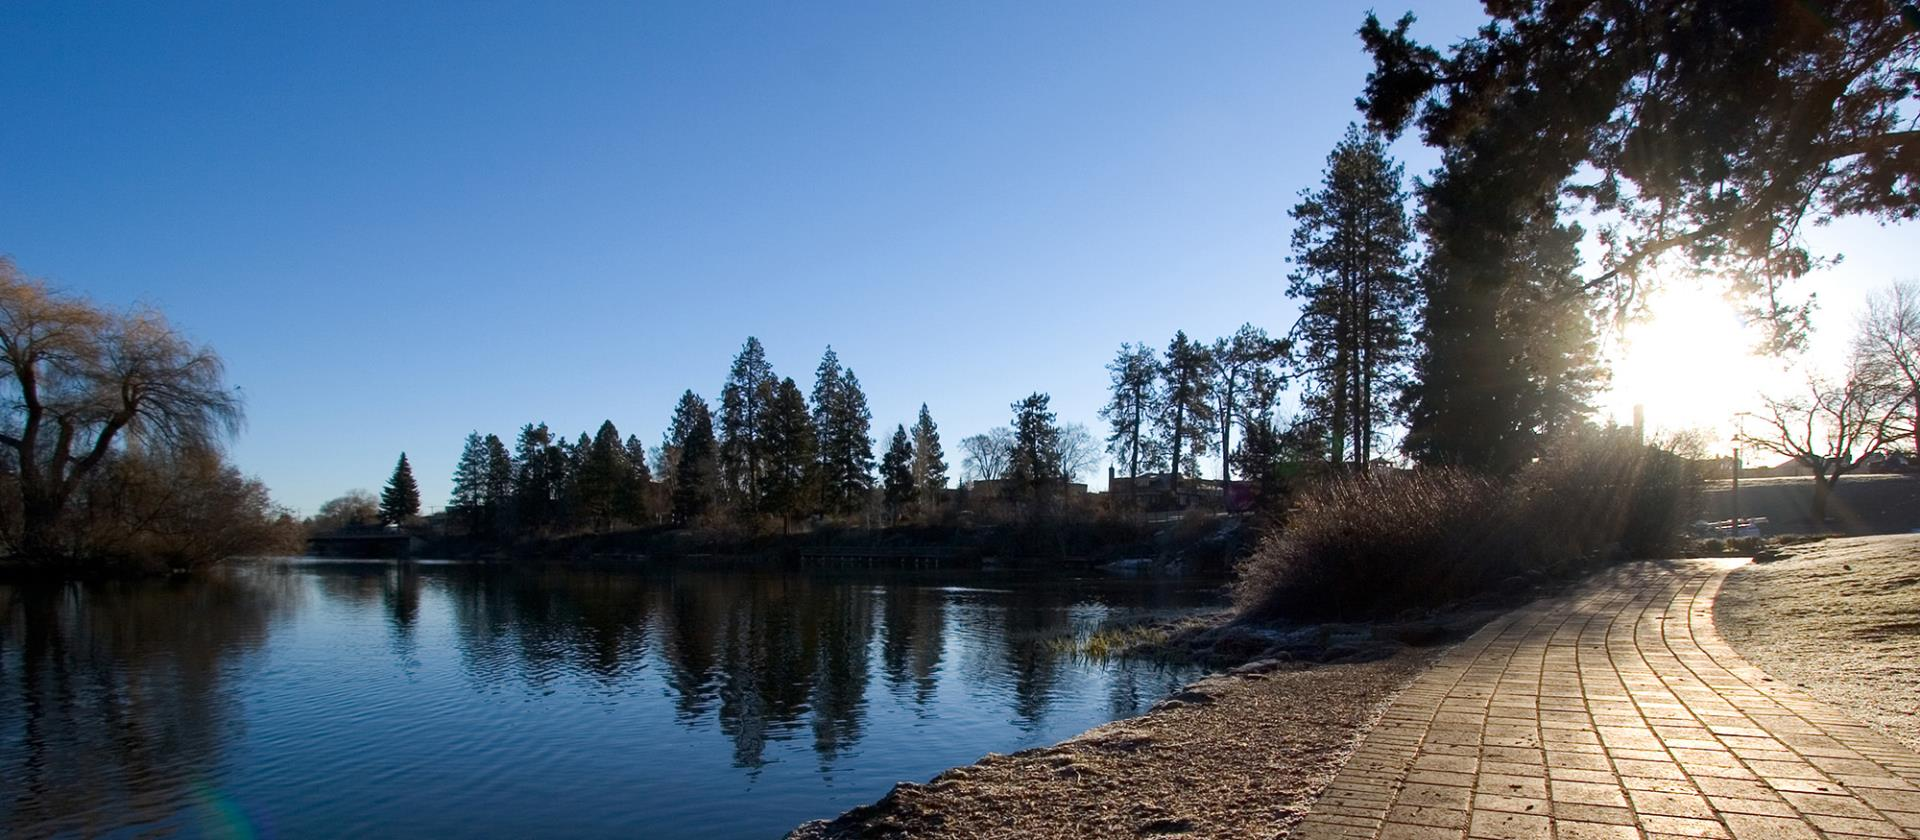 Deschutes River with sun setting over a path.